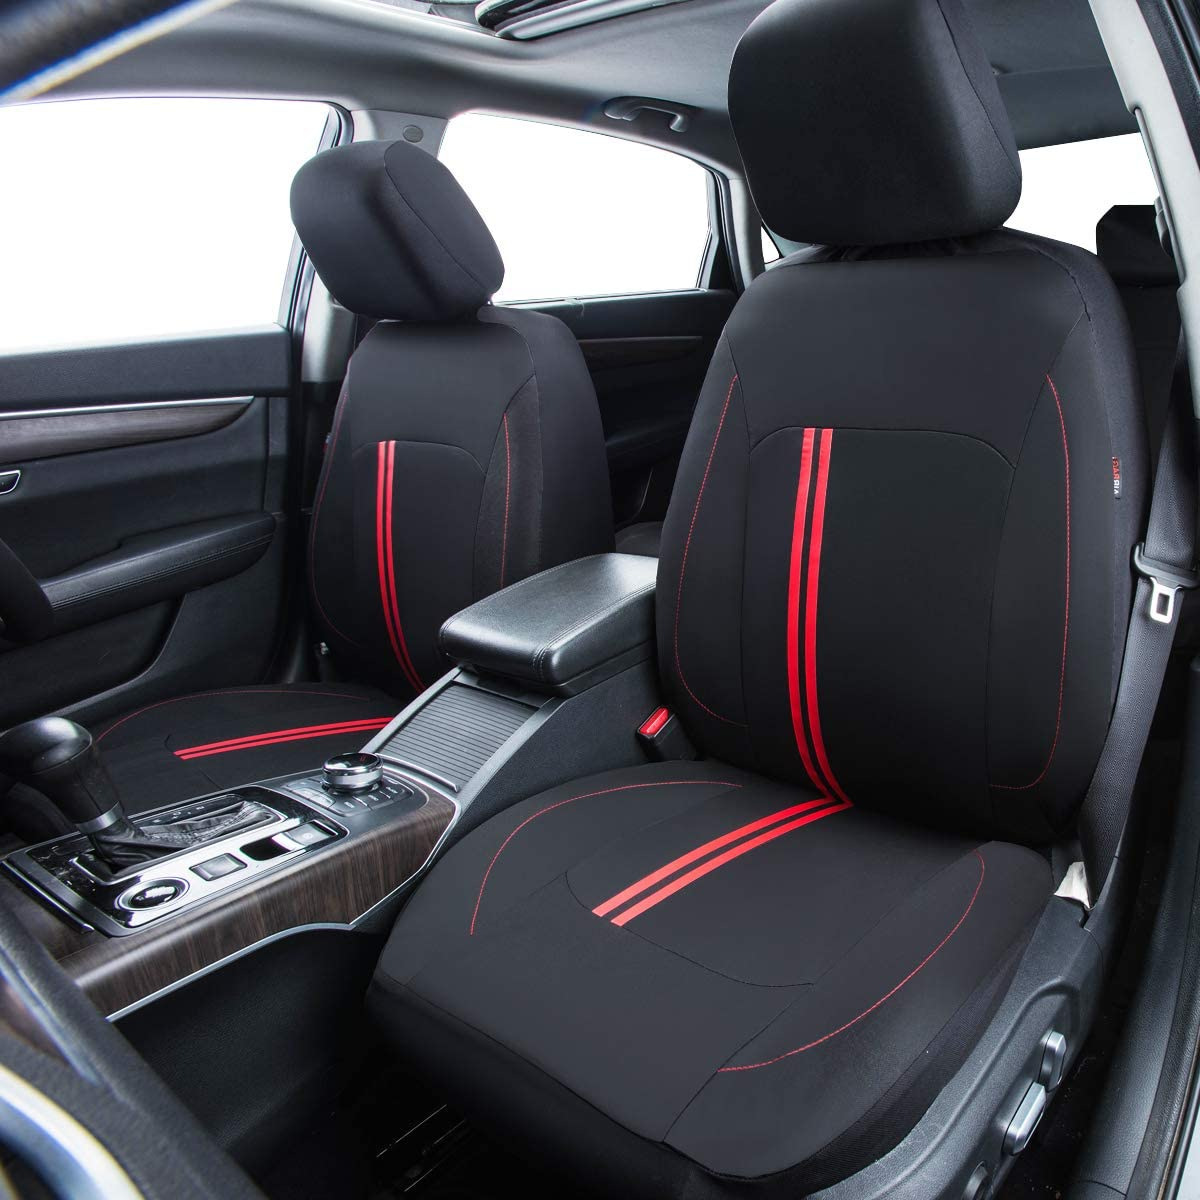 CAR PASS Sporty Strip Full Set Universal Car Seat Cover Fit for Suvs,Vans,Sedans,Trucks Black with red